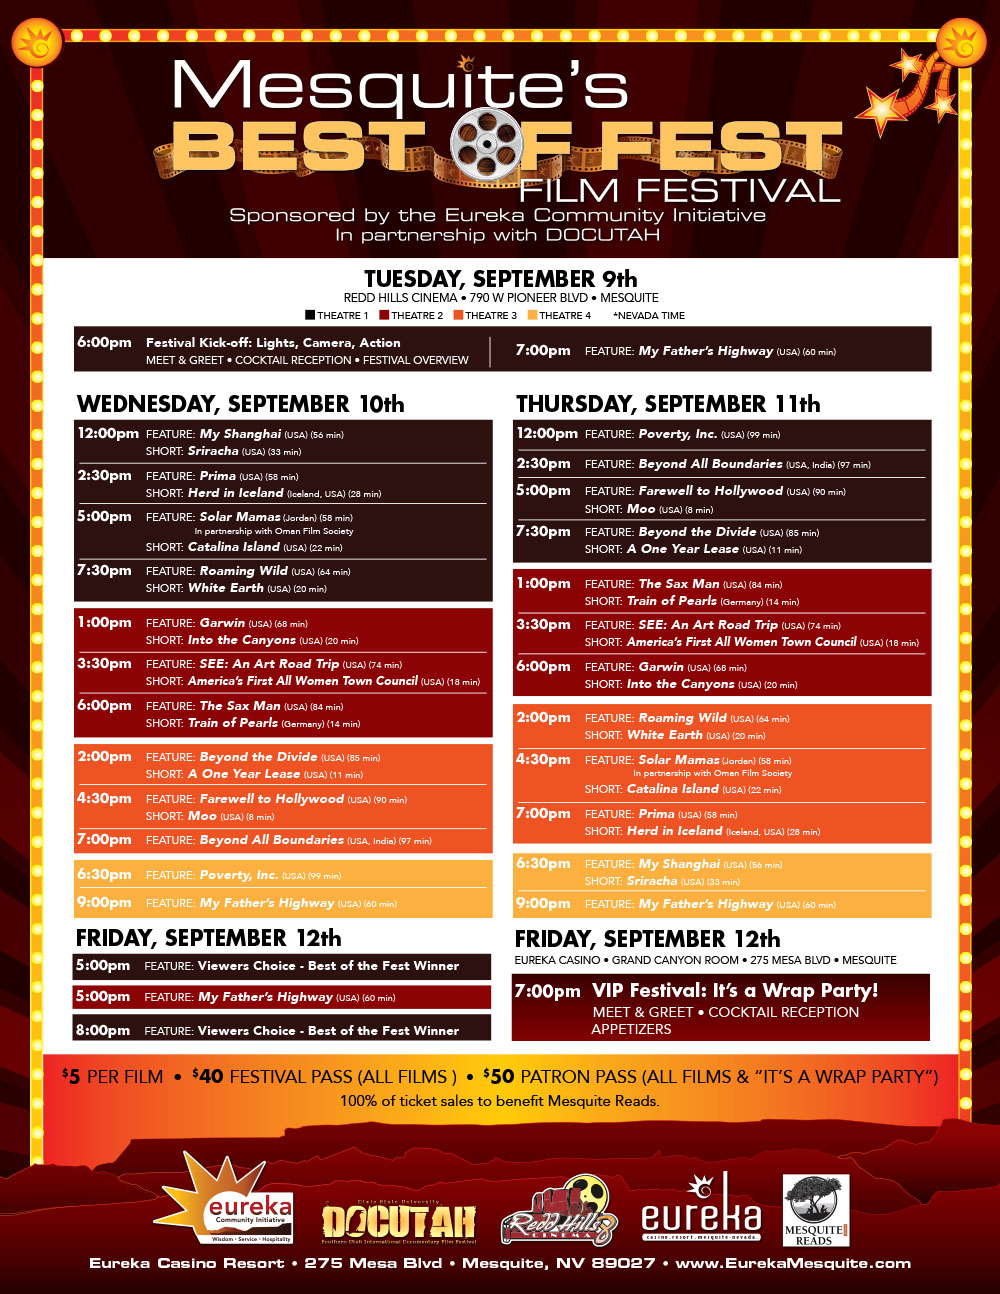 Best of Fest Film Festival starts tonight